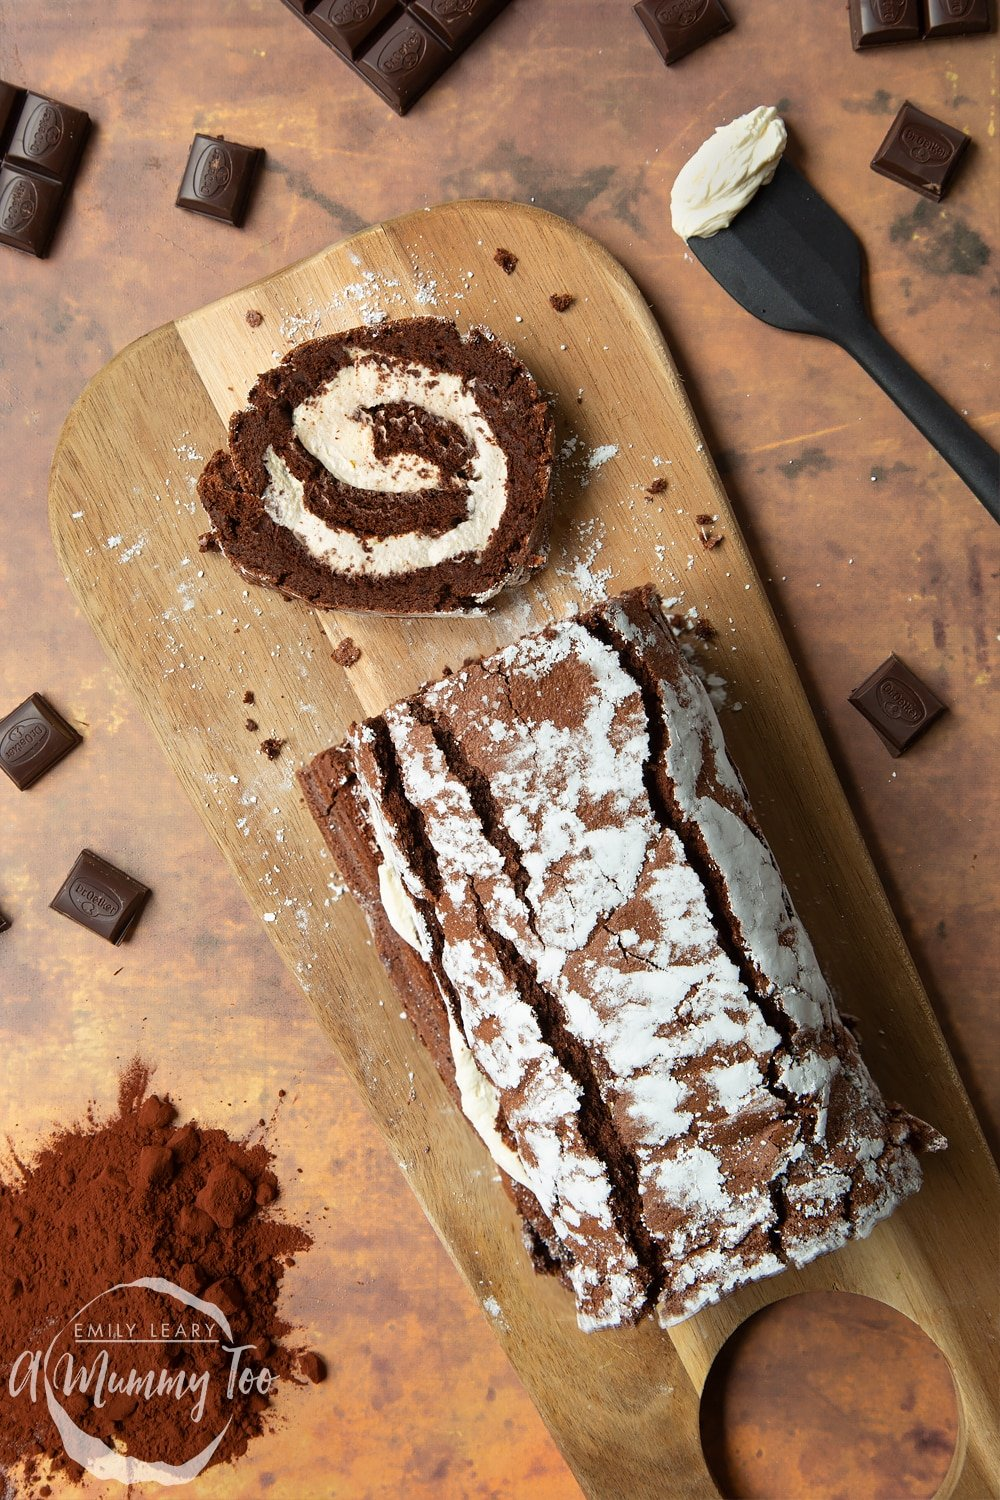 Mary Berry's chocolate roulade, shown from above, with a slice on a board.